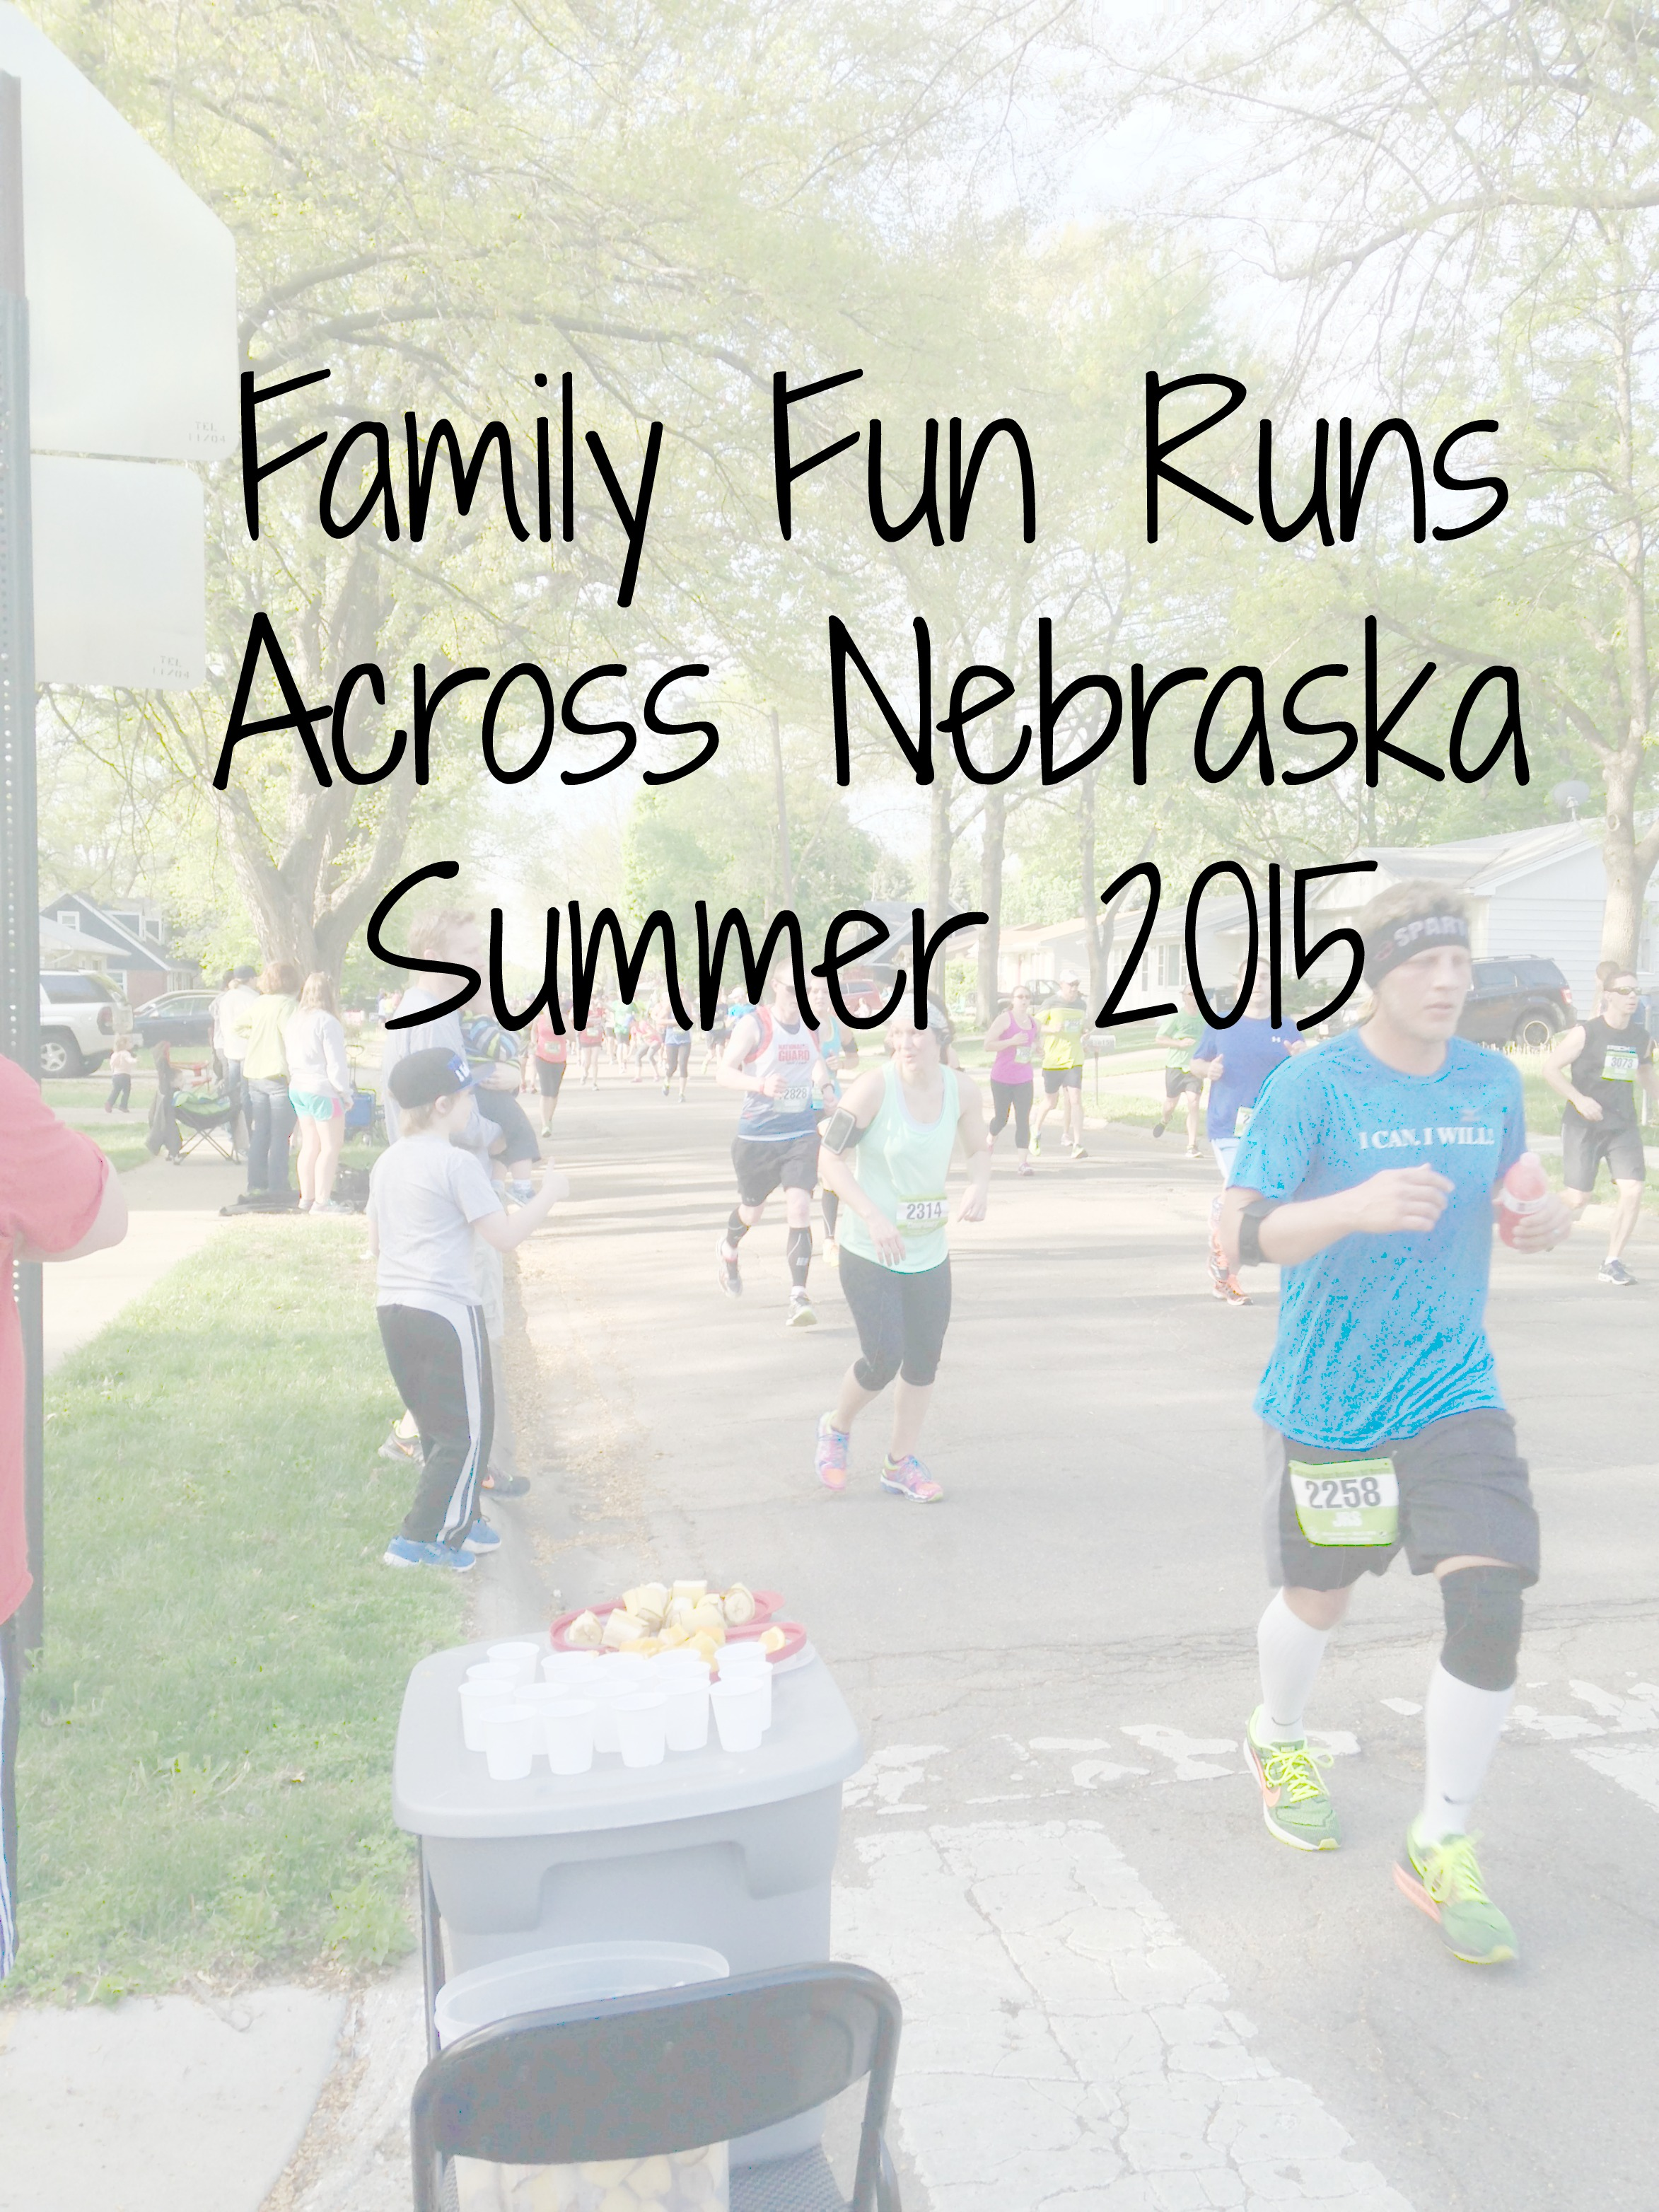 fun runs across Nebraska in 2015